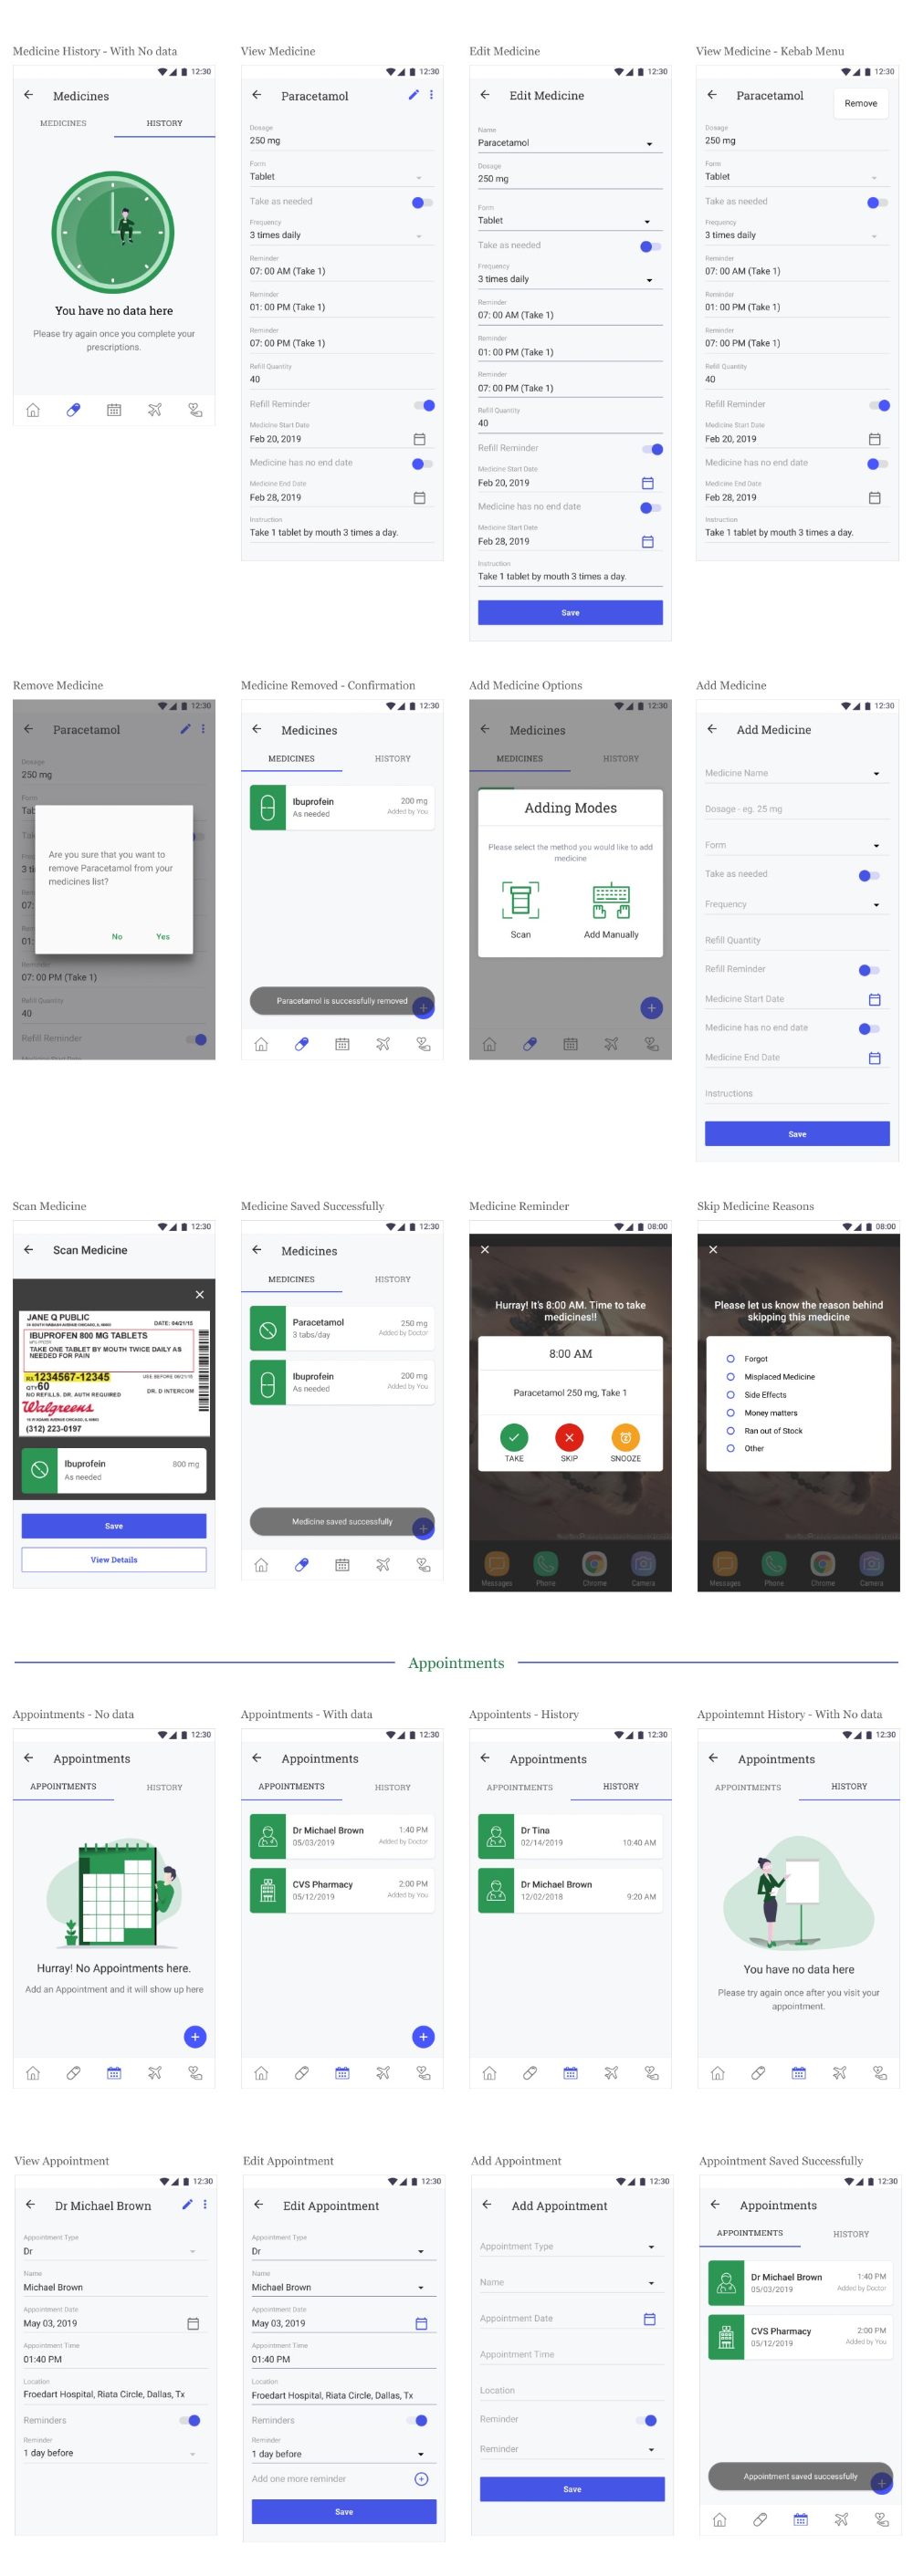 Designing a health reminder application — a UX case study